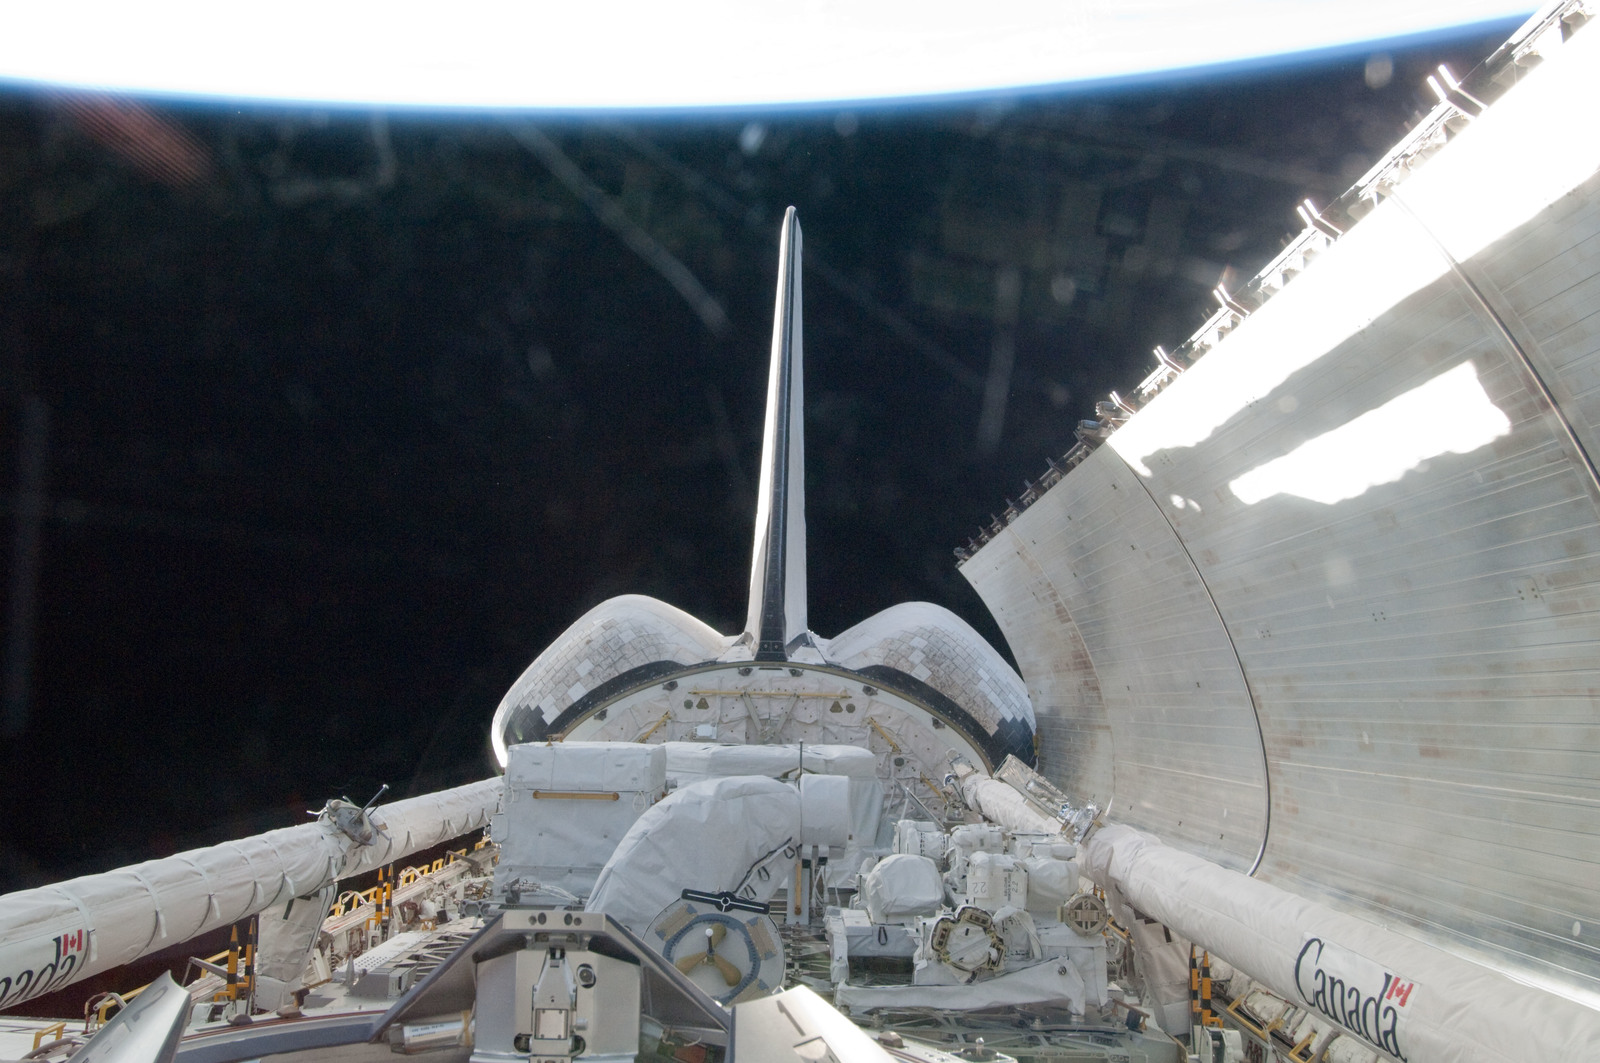 S134E005313 - STS-134 - View of the Shuttle Endeavour Payload Bay